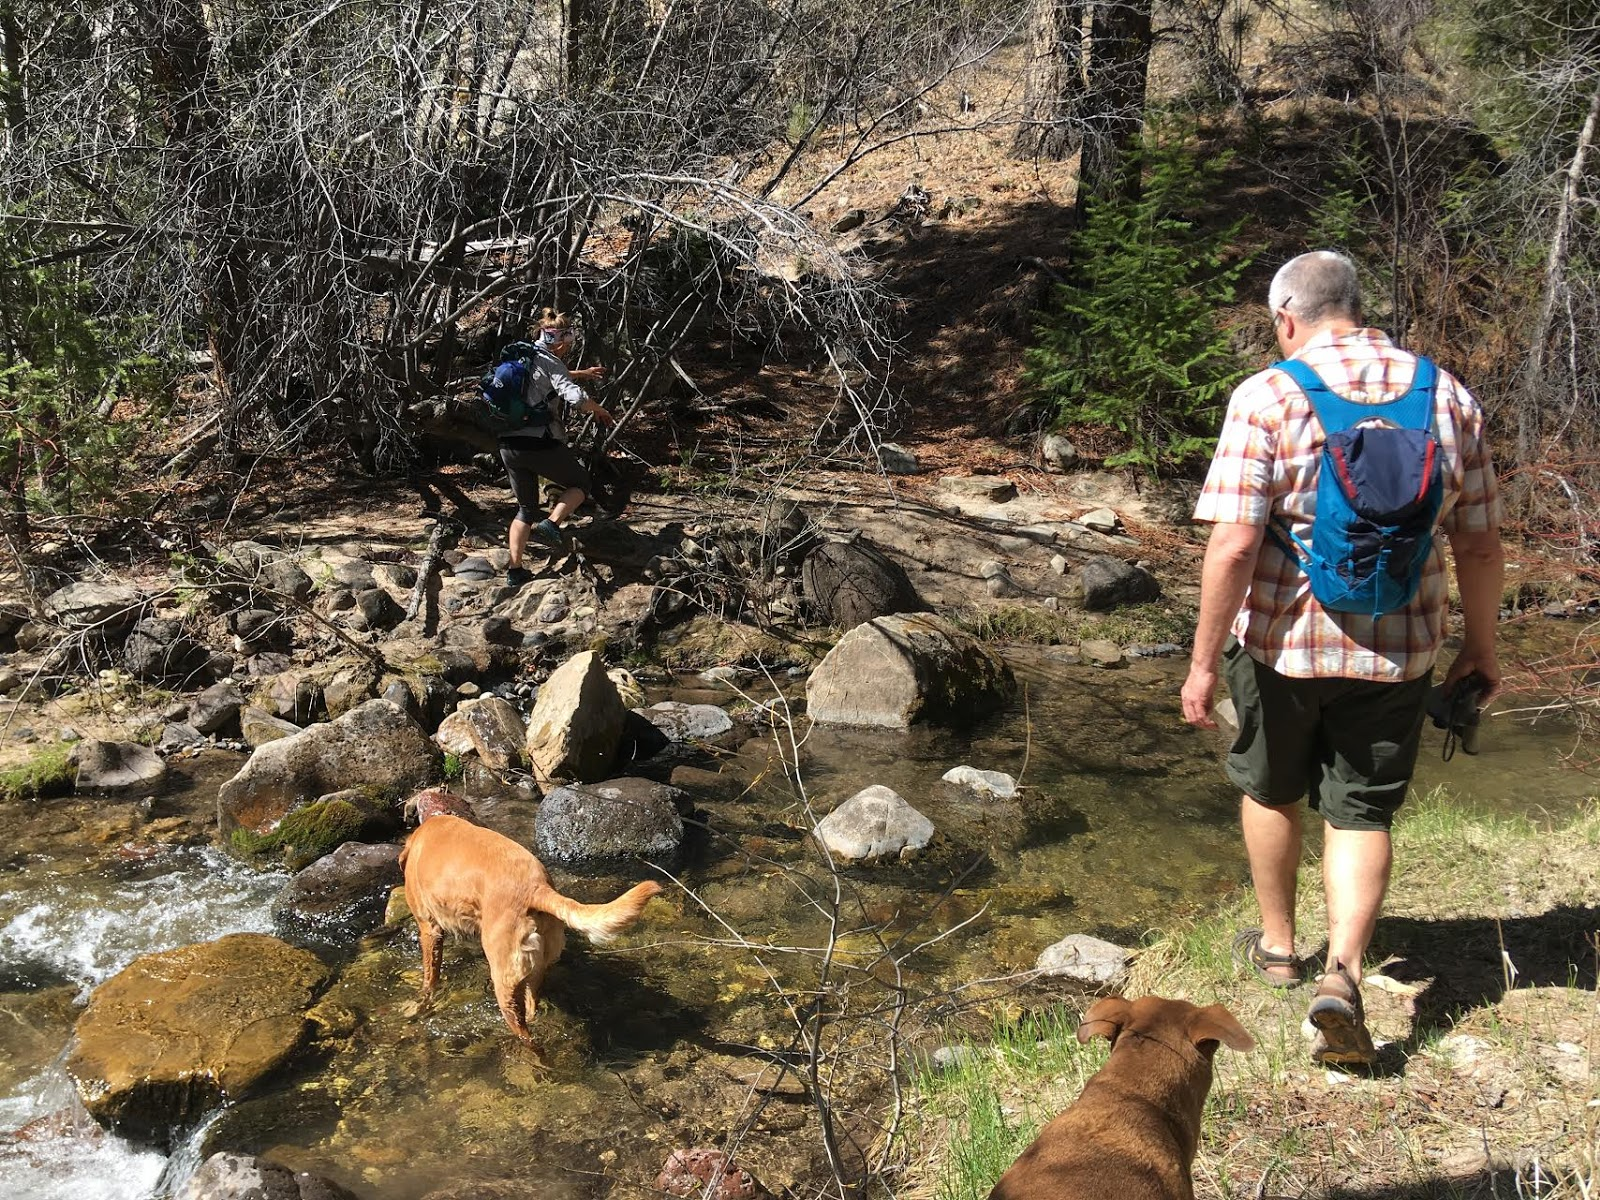 Hiking Pine Creek (The Box Trail) in Escalante, Utah, Hiking in Grand Staircase Escalante National Monument, Hiking in Utah with Dogs